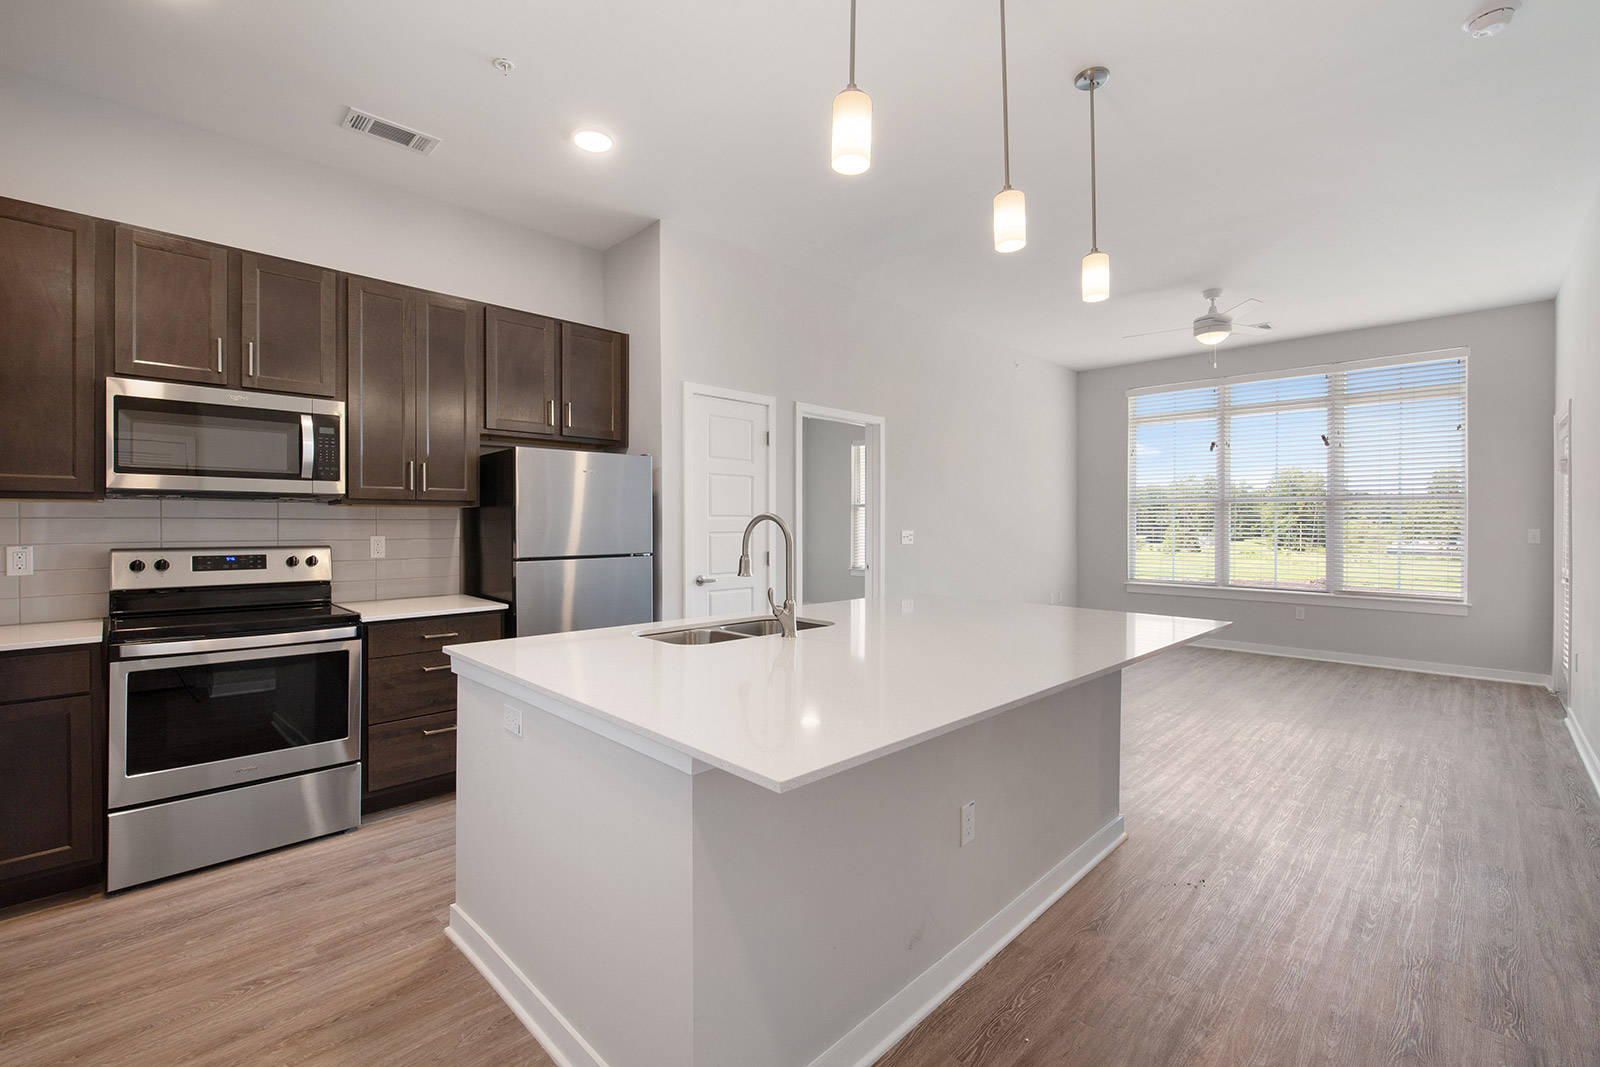 Modern Lighting in Kitchen at Sawgrass Point in Gonzales, Louisiana